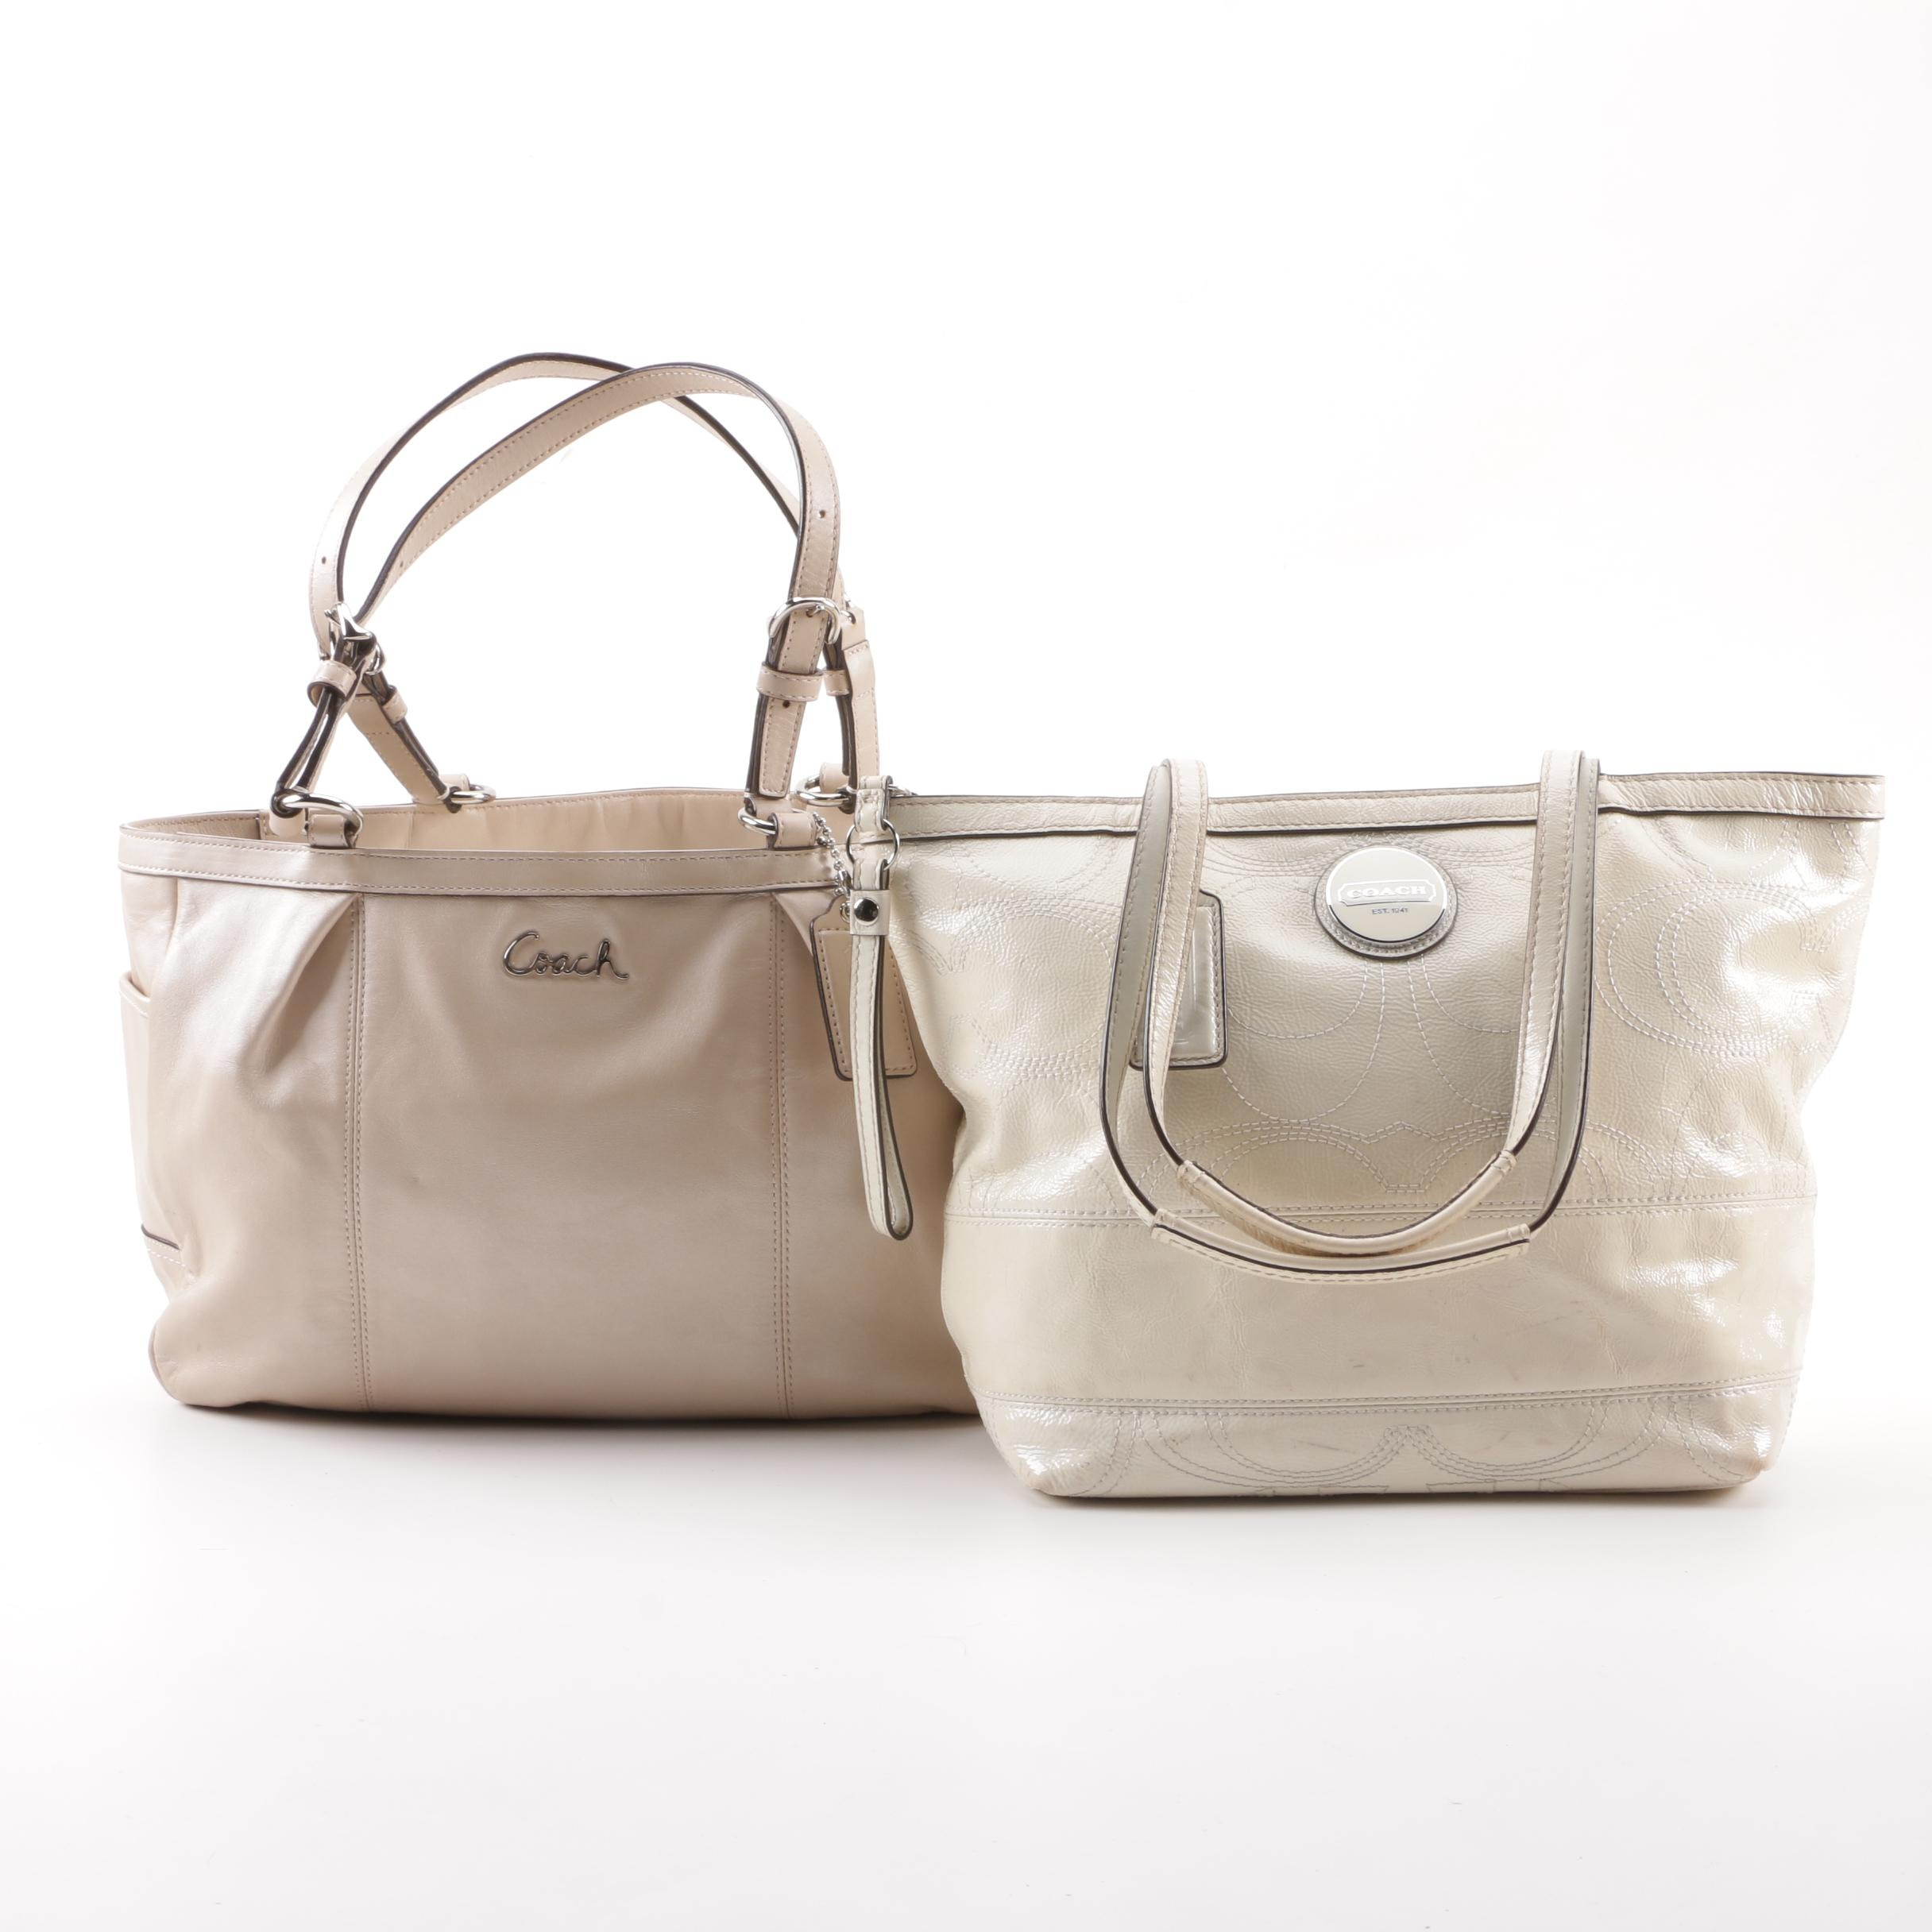 Coach Gallery Leather Tote and Signature Stripe Patent Leather Tote